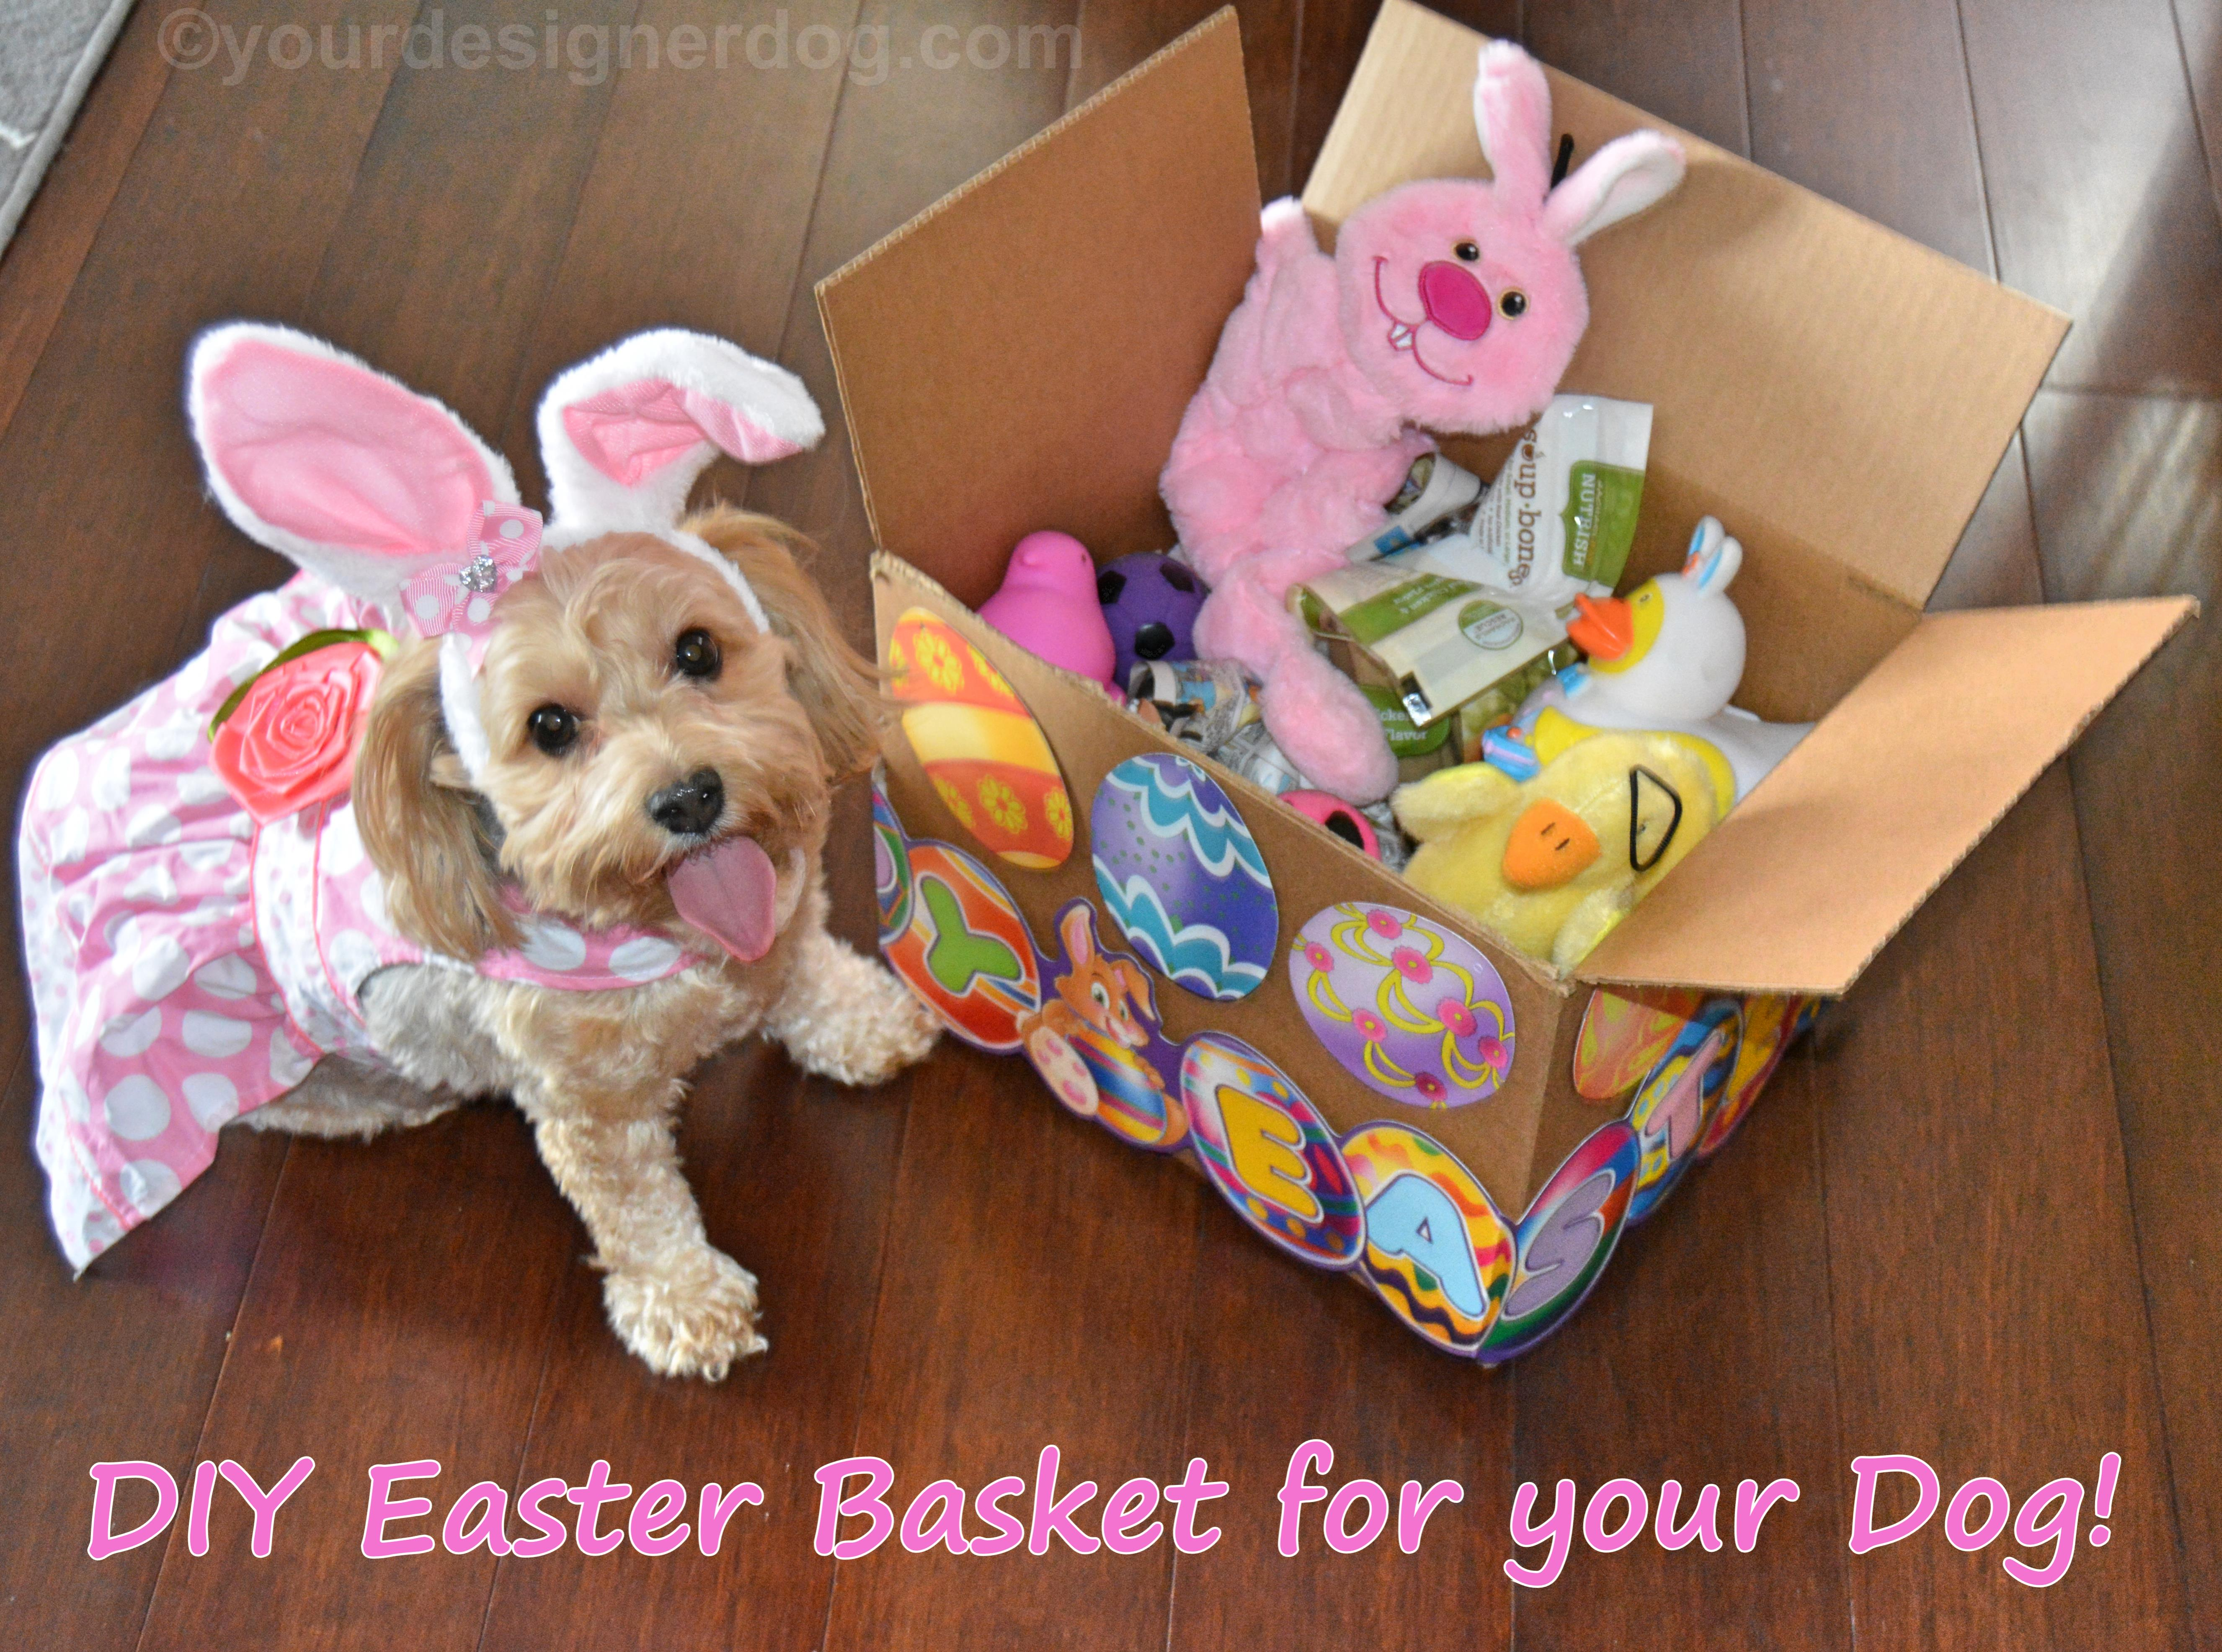 A DIY Easter Basket Your Dog Will Love!